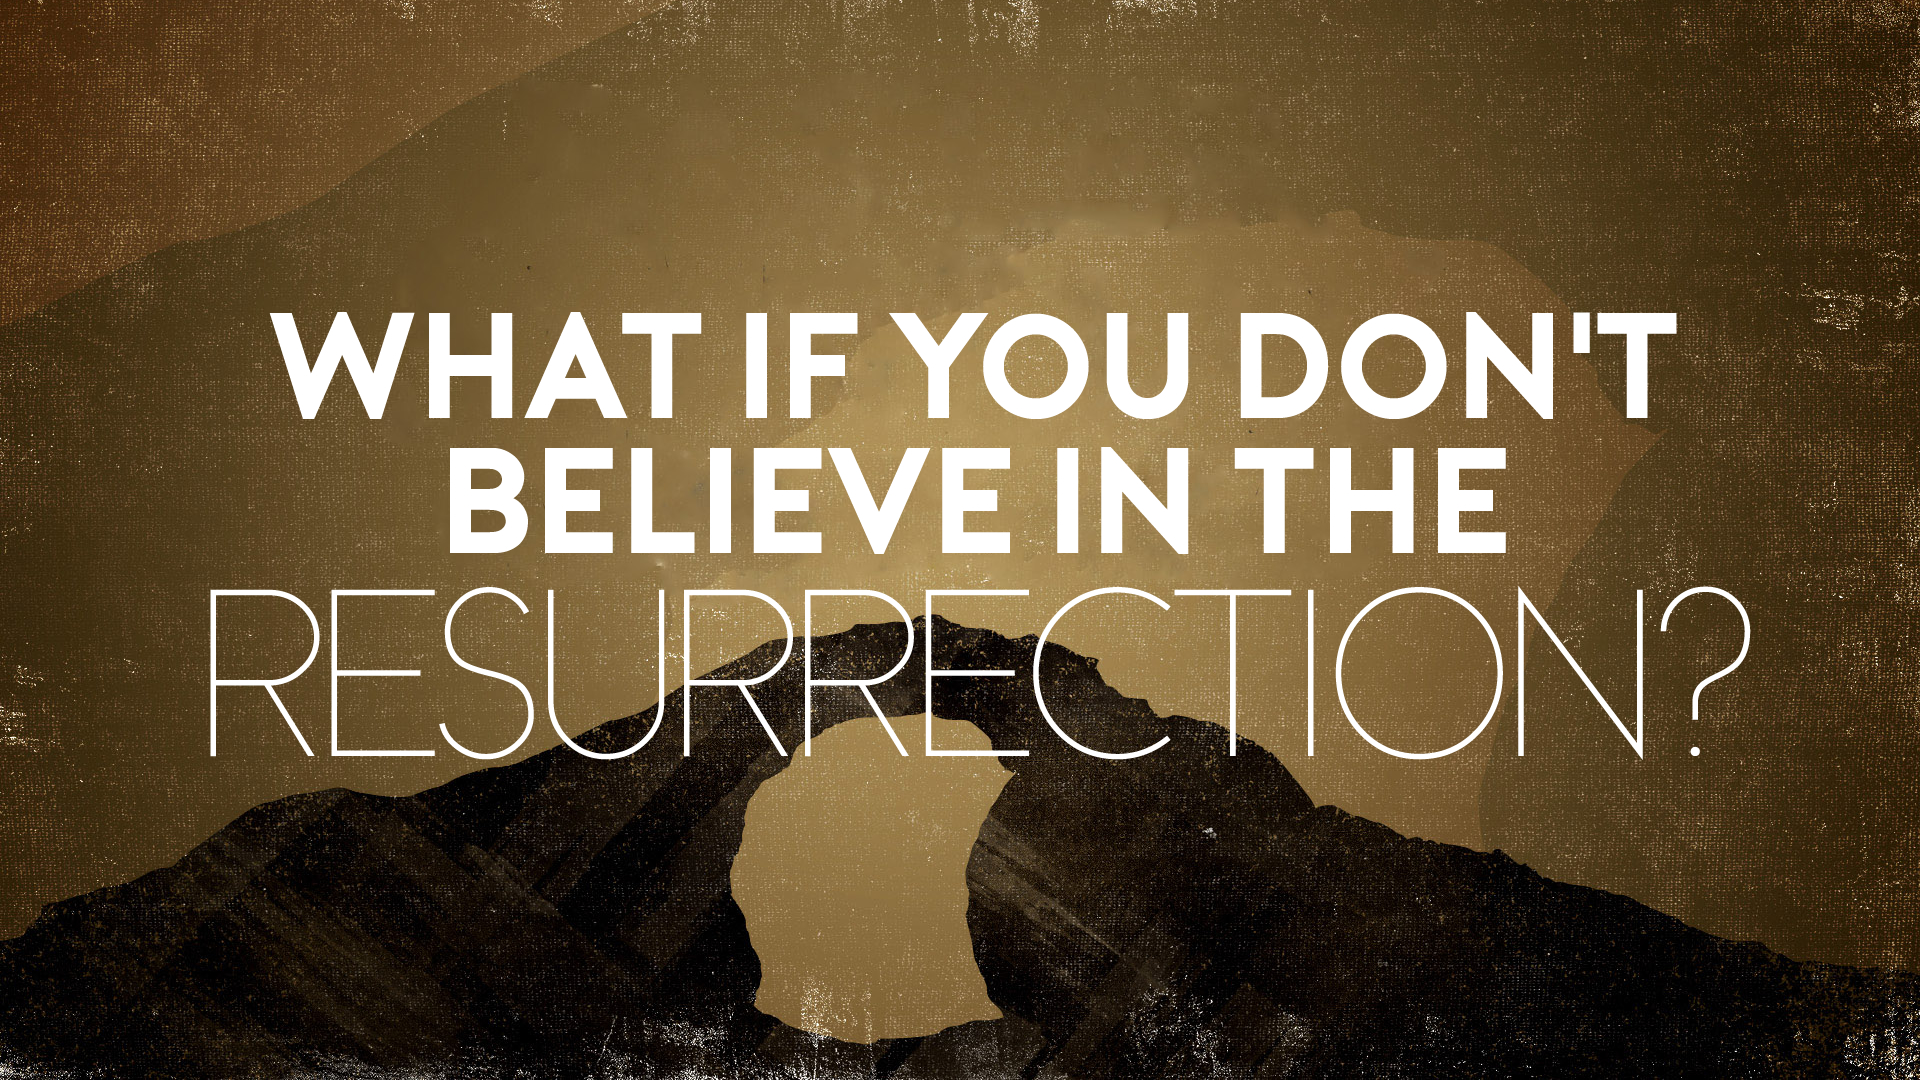 What if You Don't Believe in the Resurrection.jpg